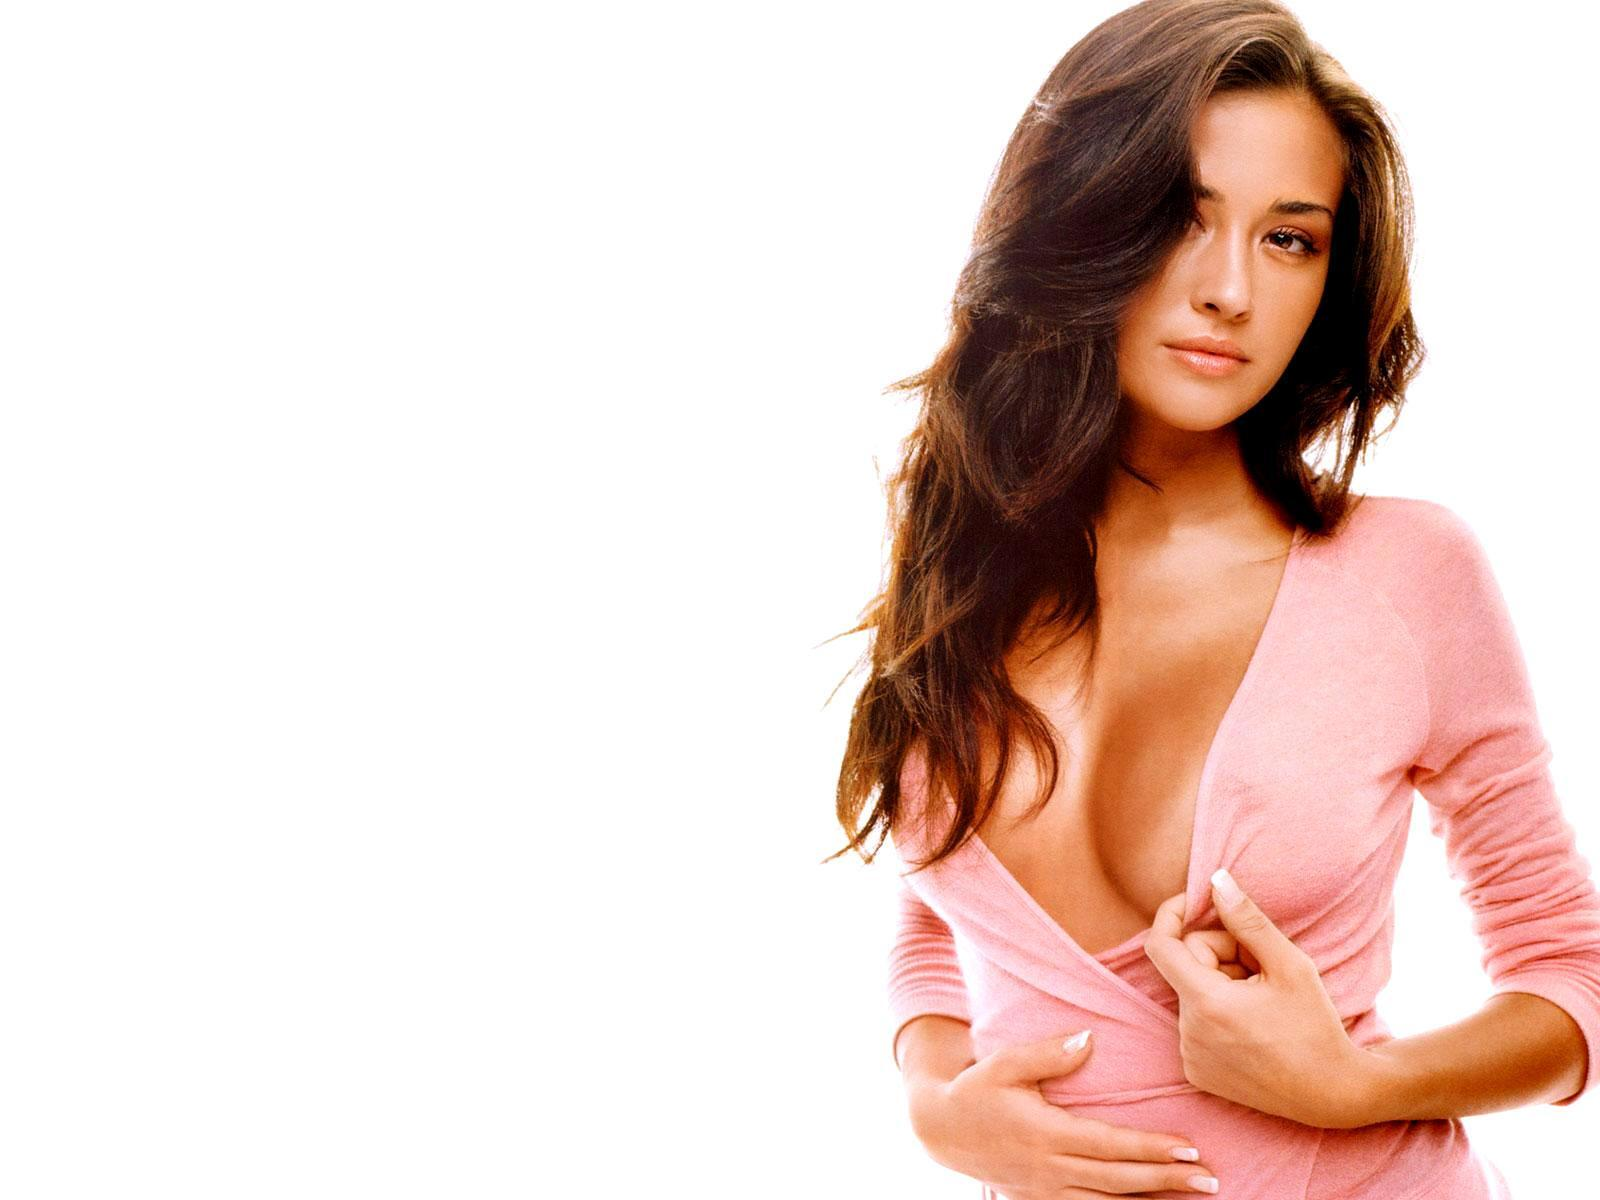 brunettes woman models Italian HD Wallpaper